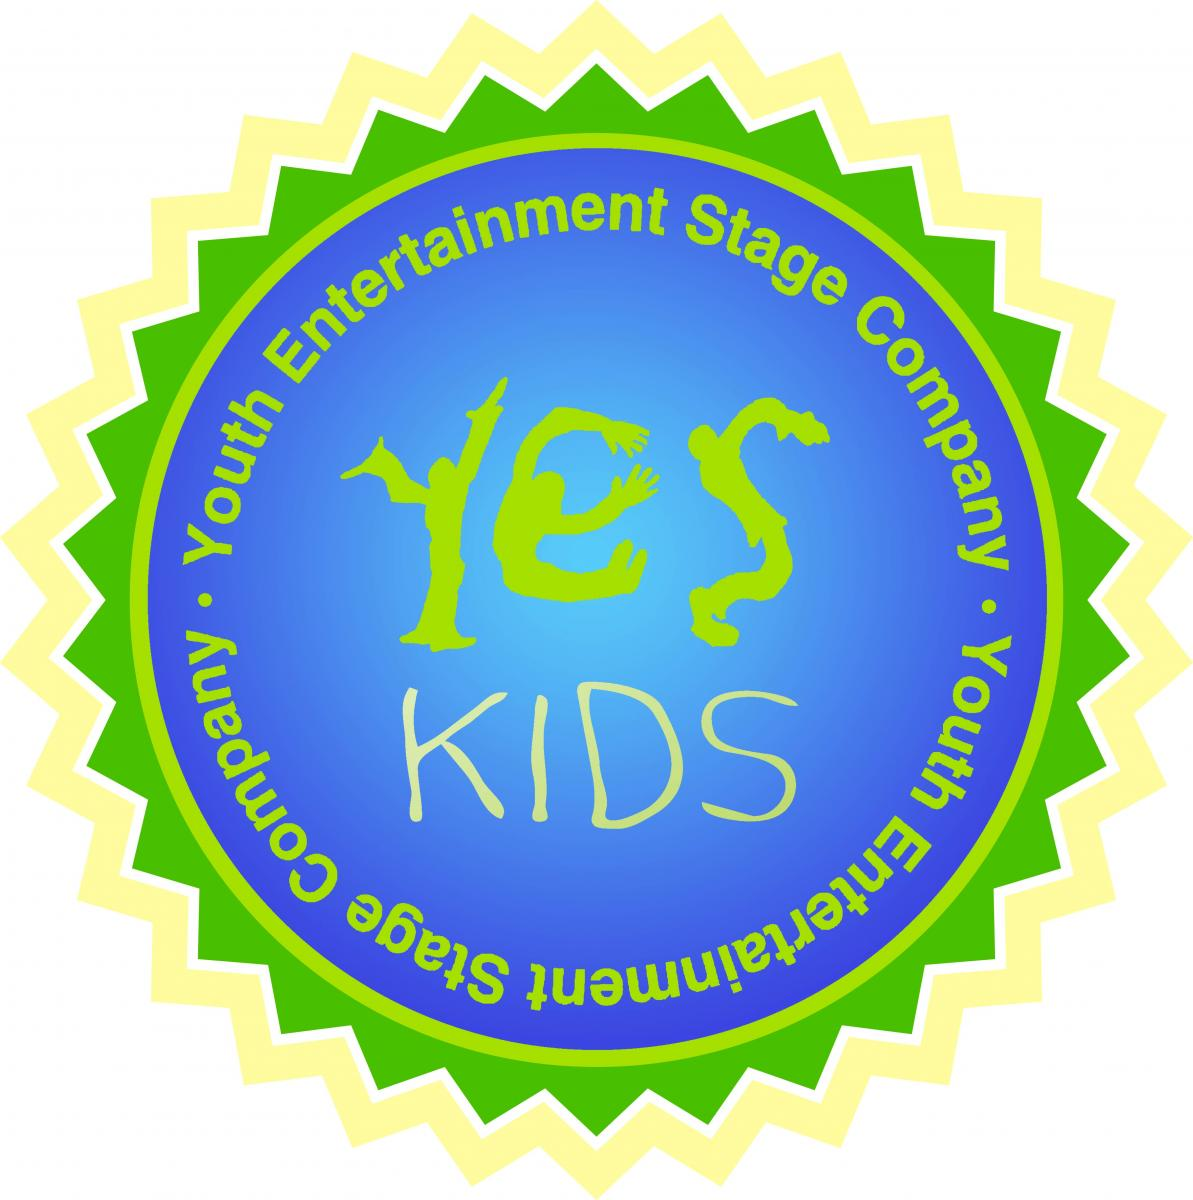 YES Kids Logo